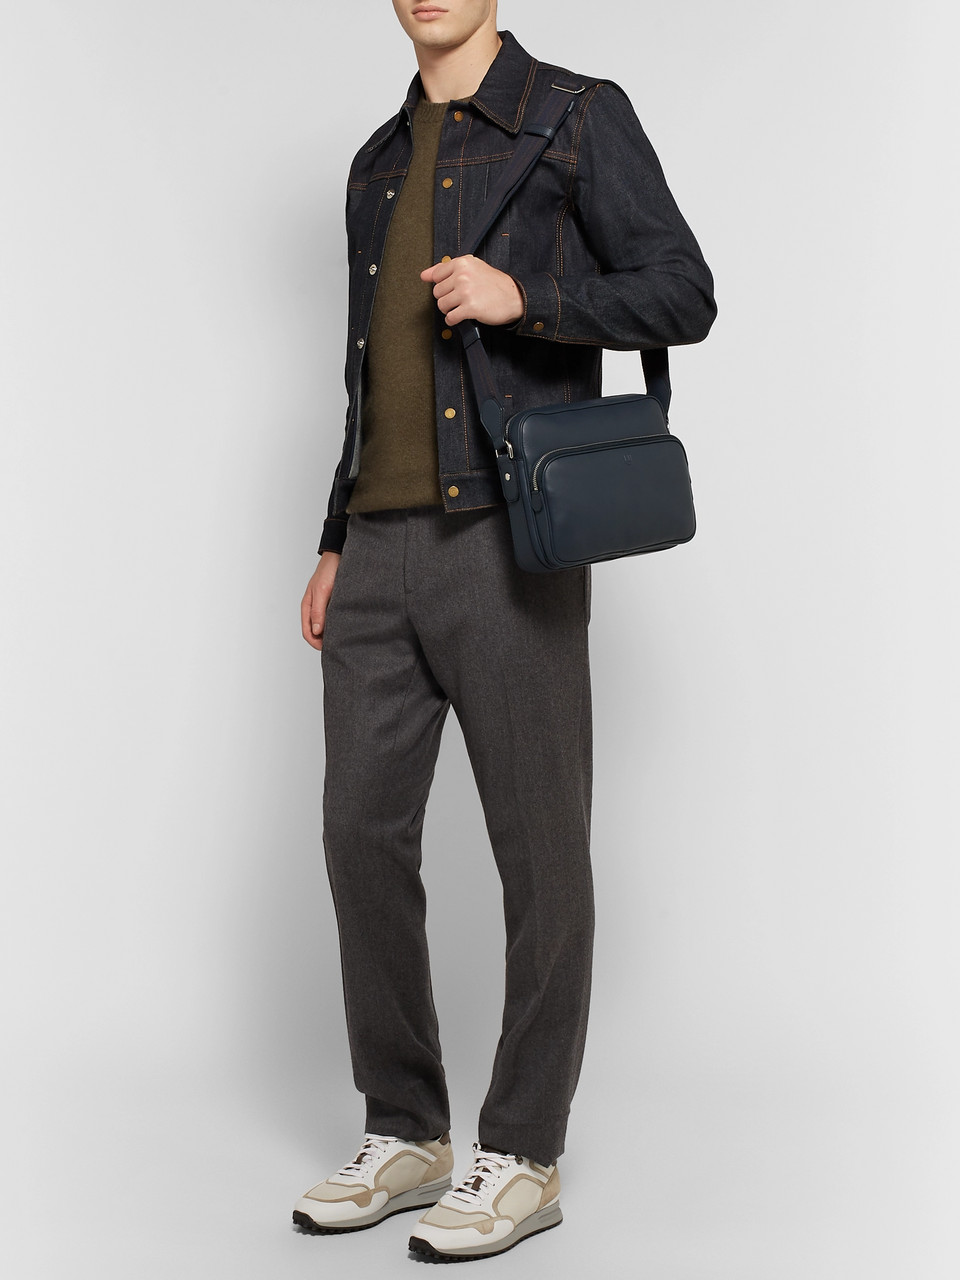 Dunhill Hampstead City Leather Messenger Bag